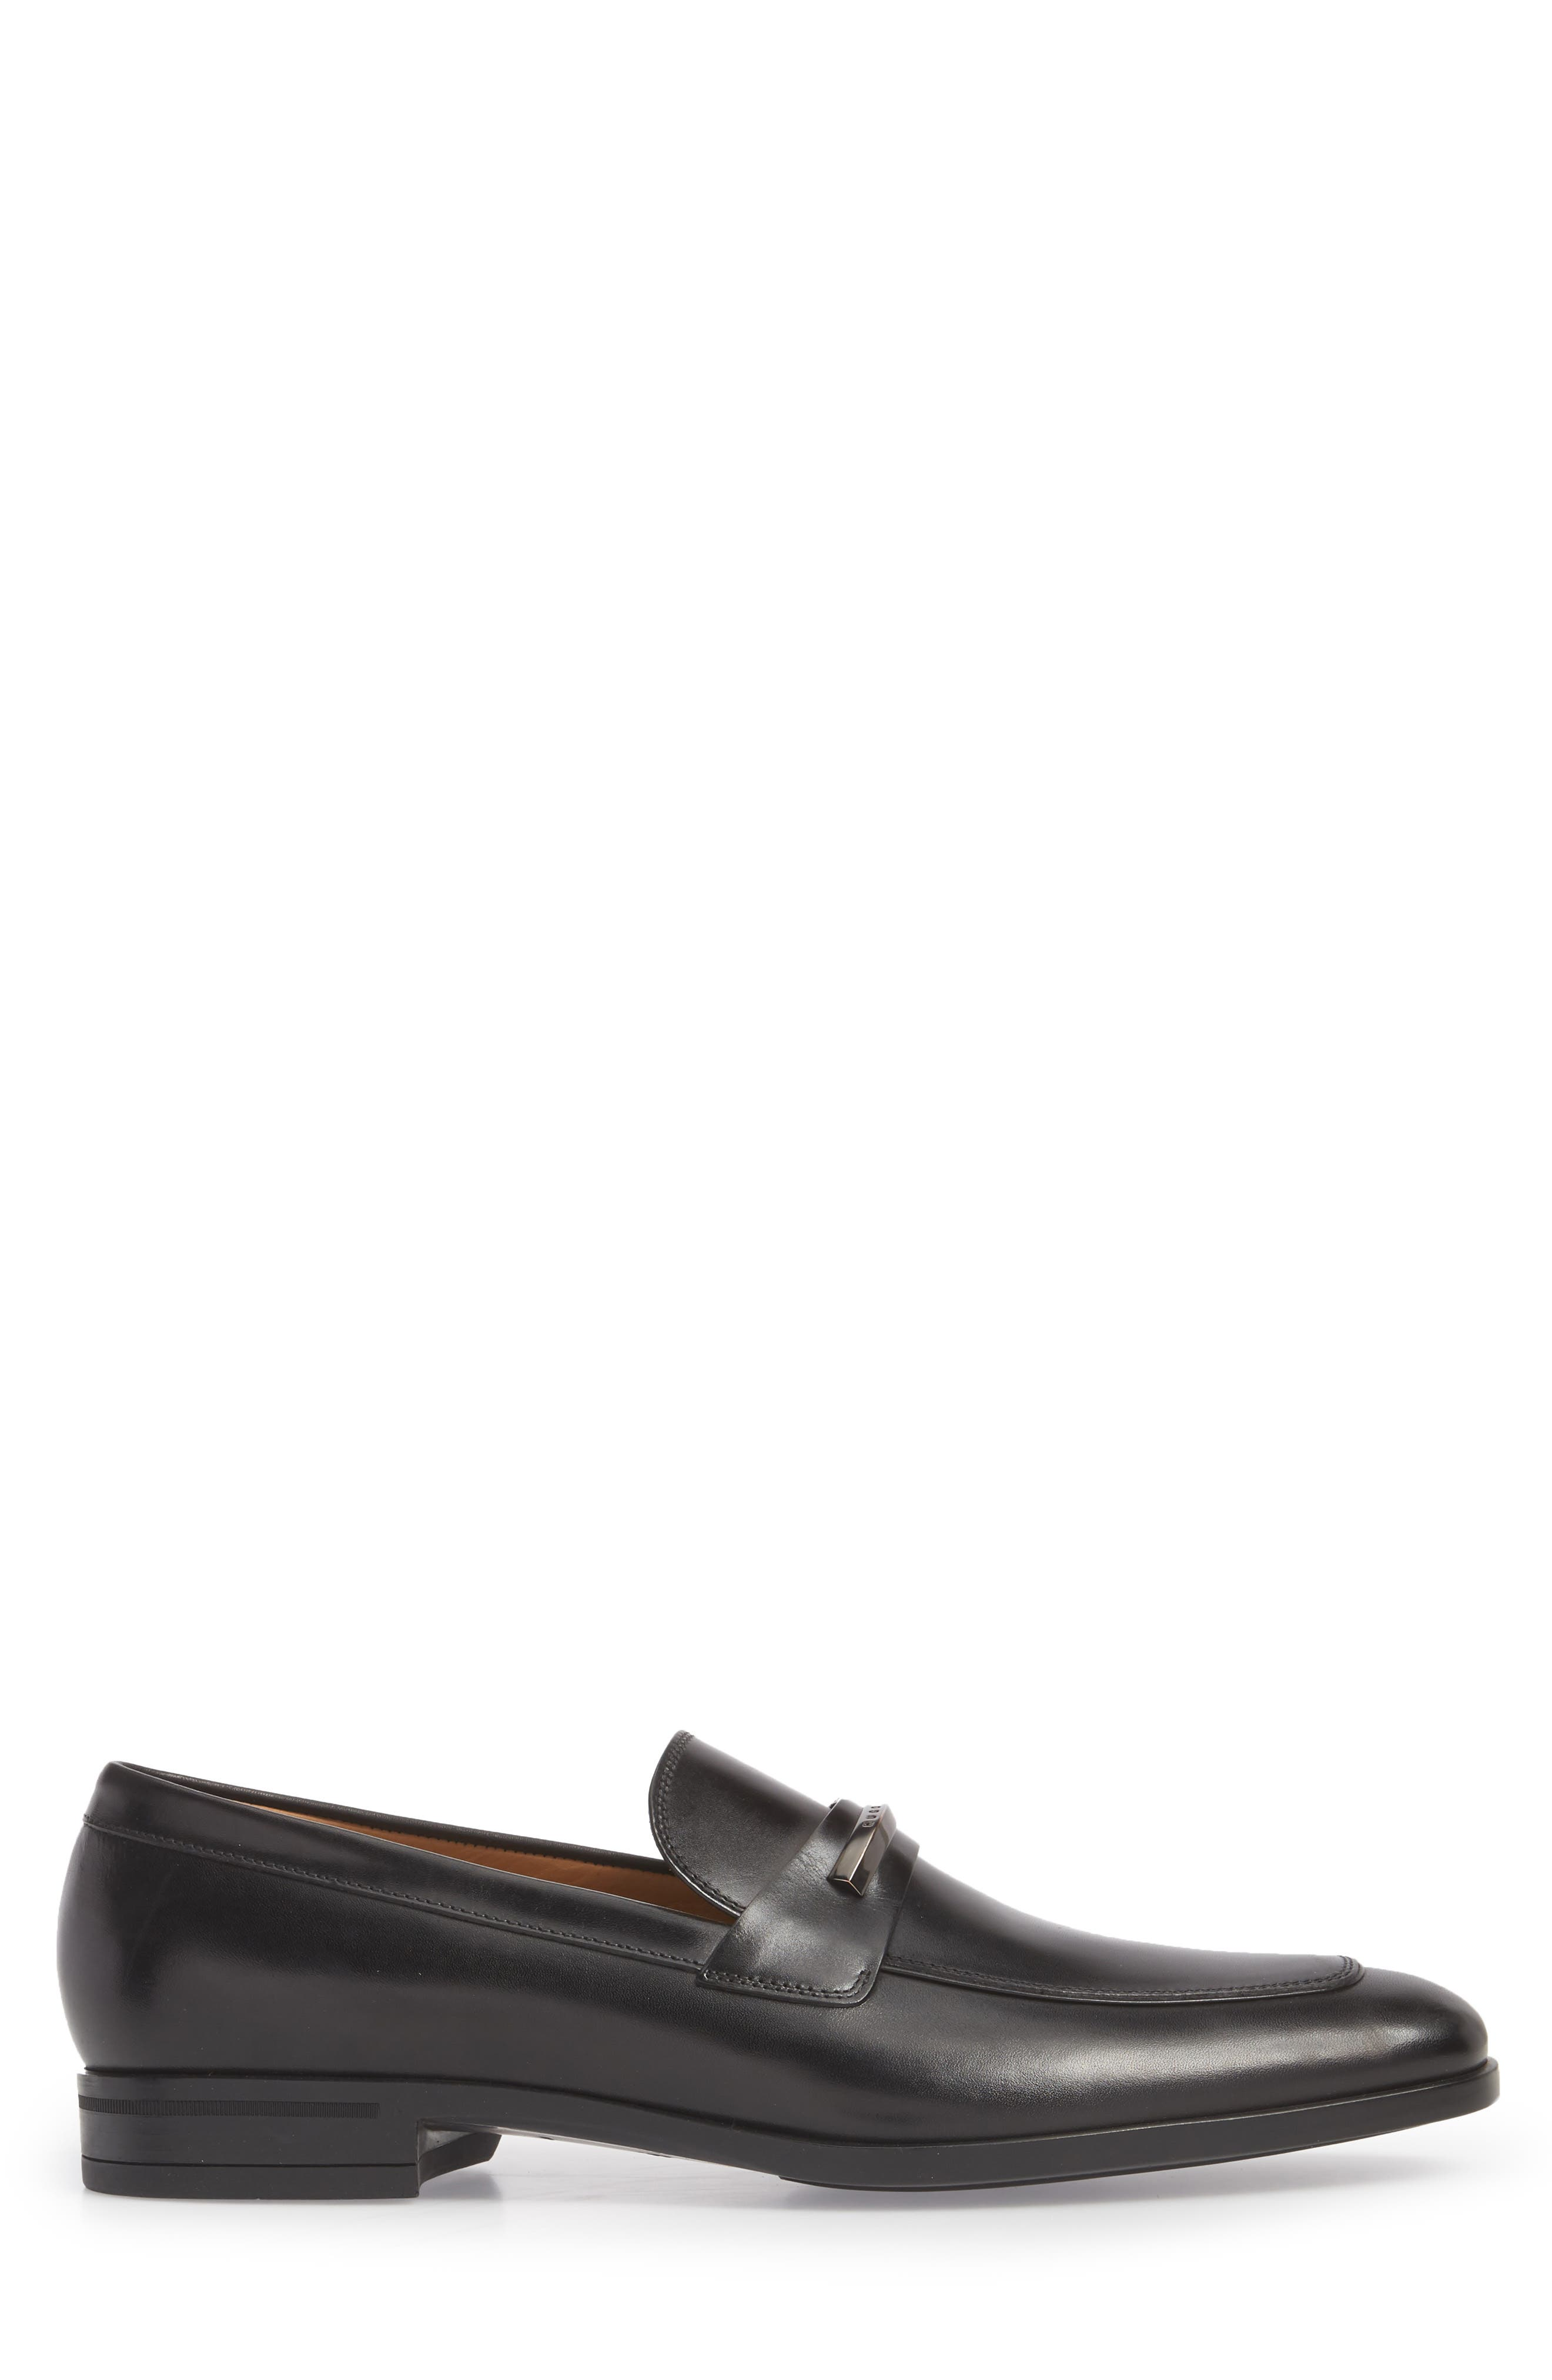 Hugo Boss Portland Solid Bit Loafer,                             Alternate thumbnail 3, color,                             BLACK LEATHER